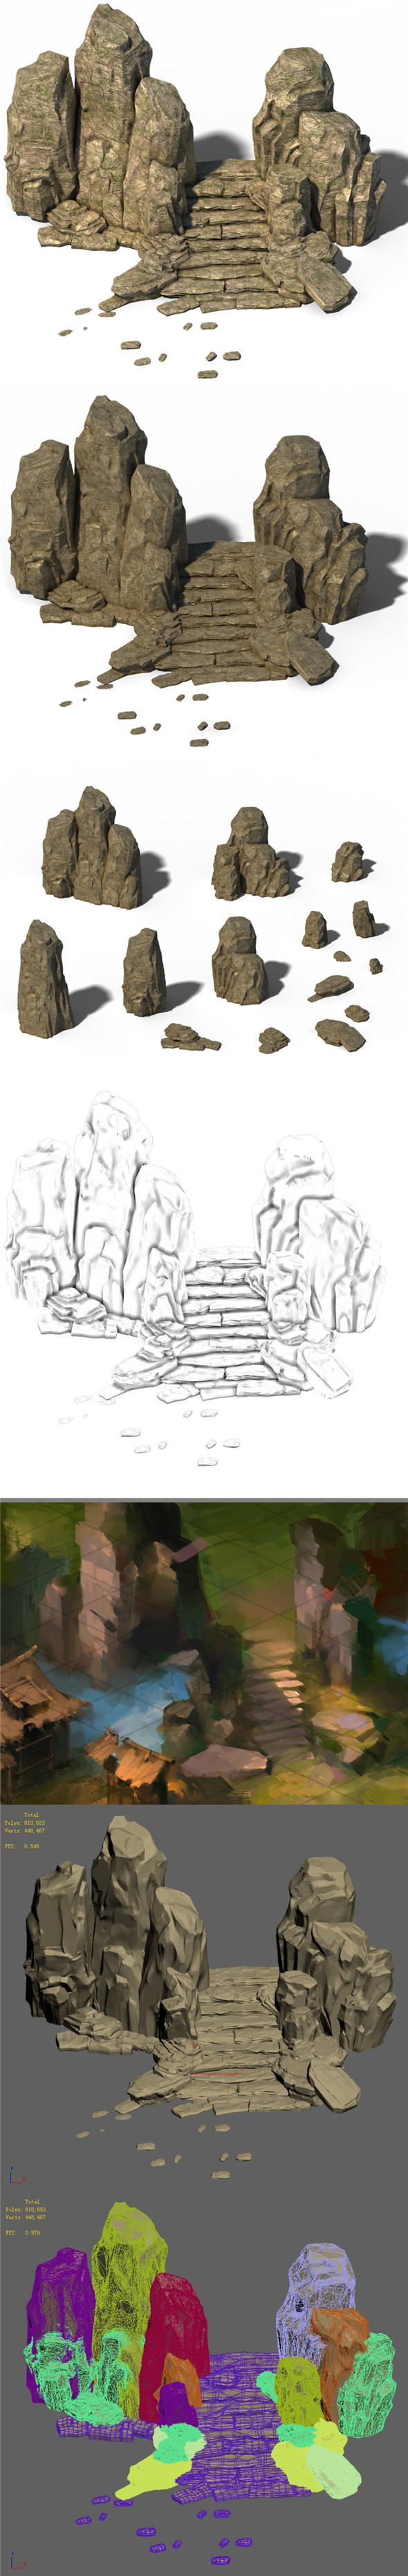 Wild - Steppe Staircase Stones 02 - 3DOcean Item for Sale